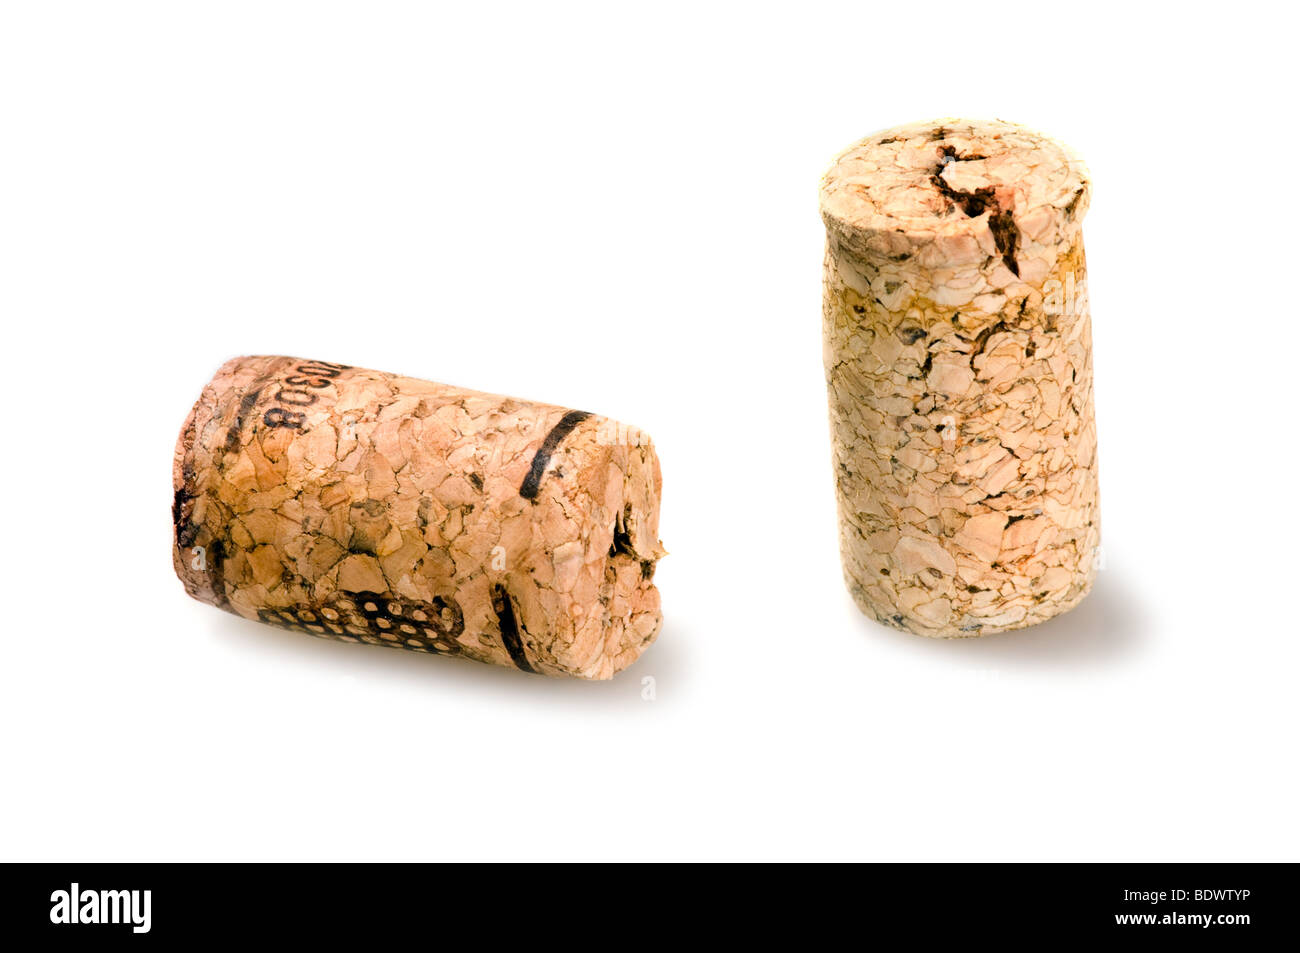 Two corks from wine bottles on white background - Stock Image